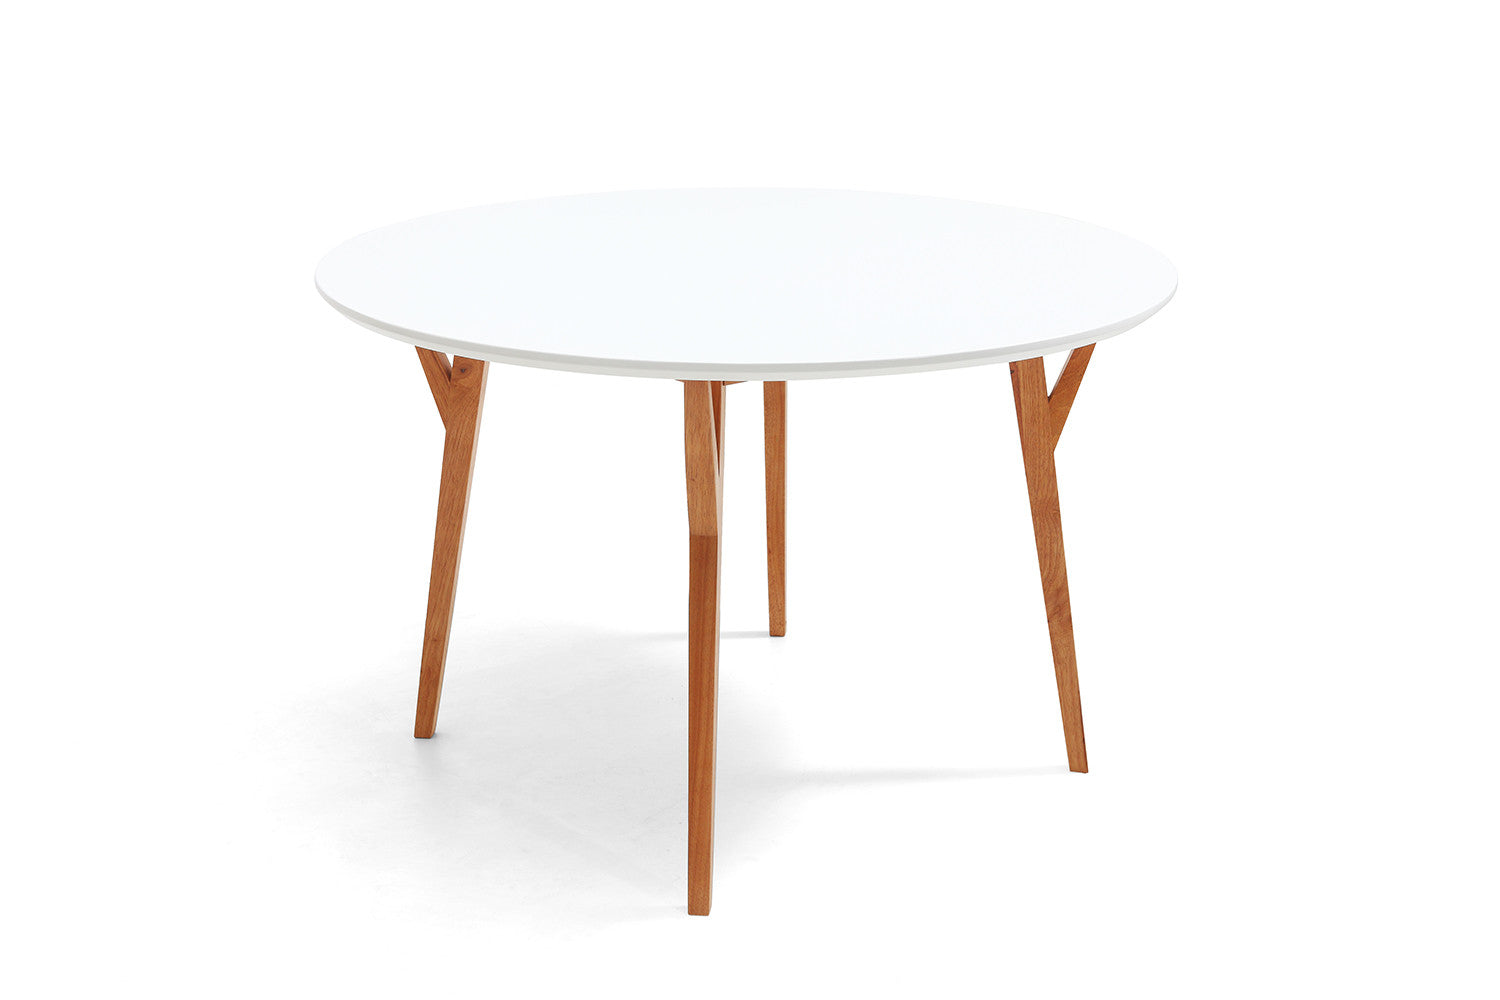 Table de salle manger ronde design scandinave moesa for Salle a manger blanche design